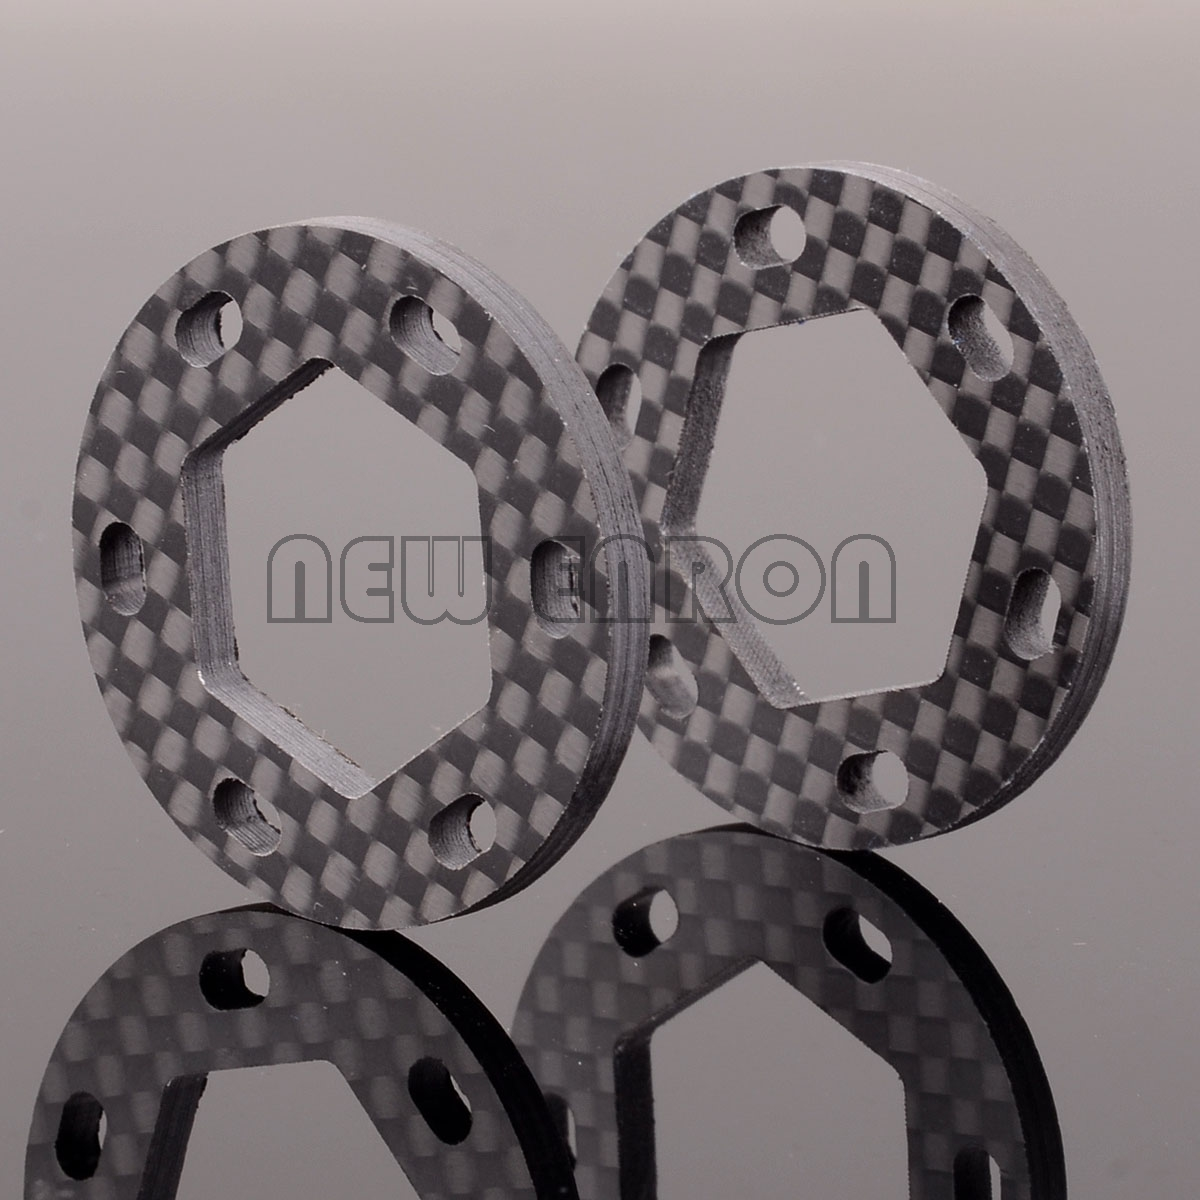 NEW ENRON 2P Carbon Fiber DUAL FIBERGLASS BRAKE DISK 19x35x3mm HPI 87055 SAVAGE X 4.6 5.9